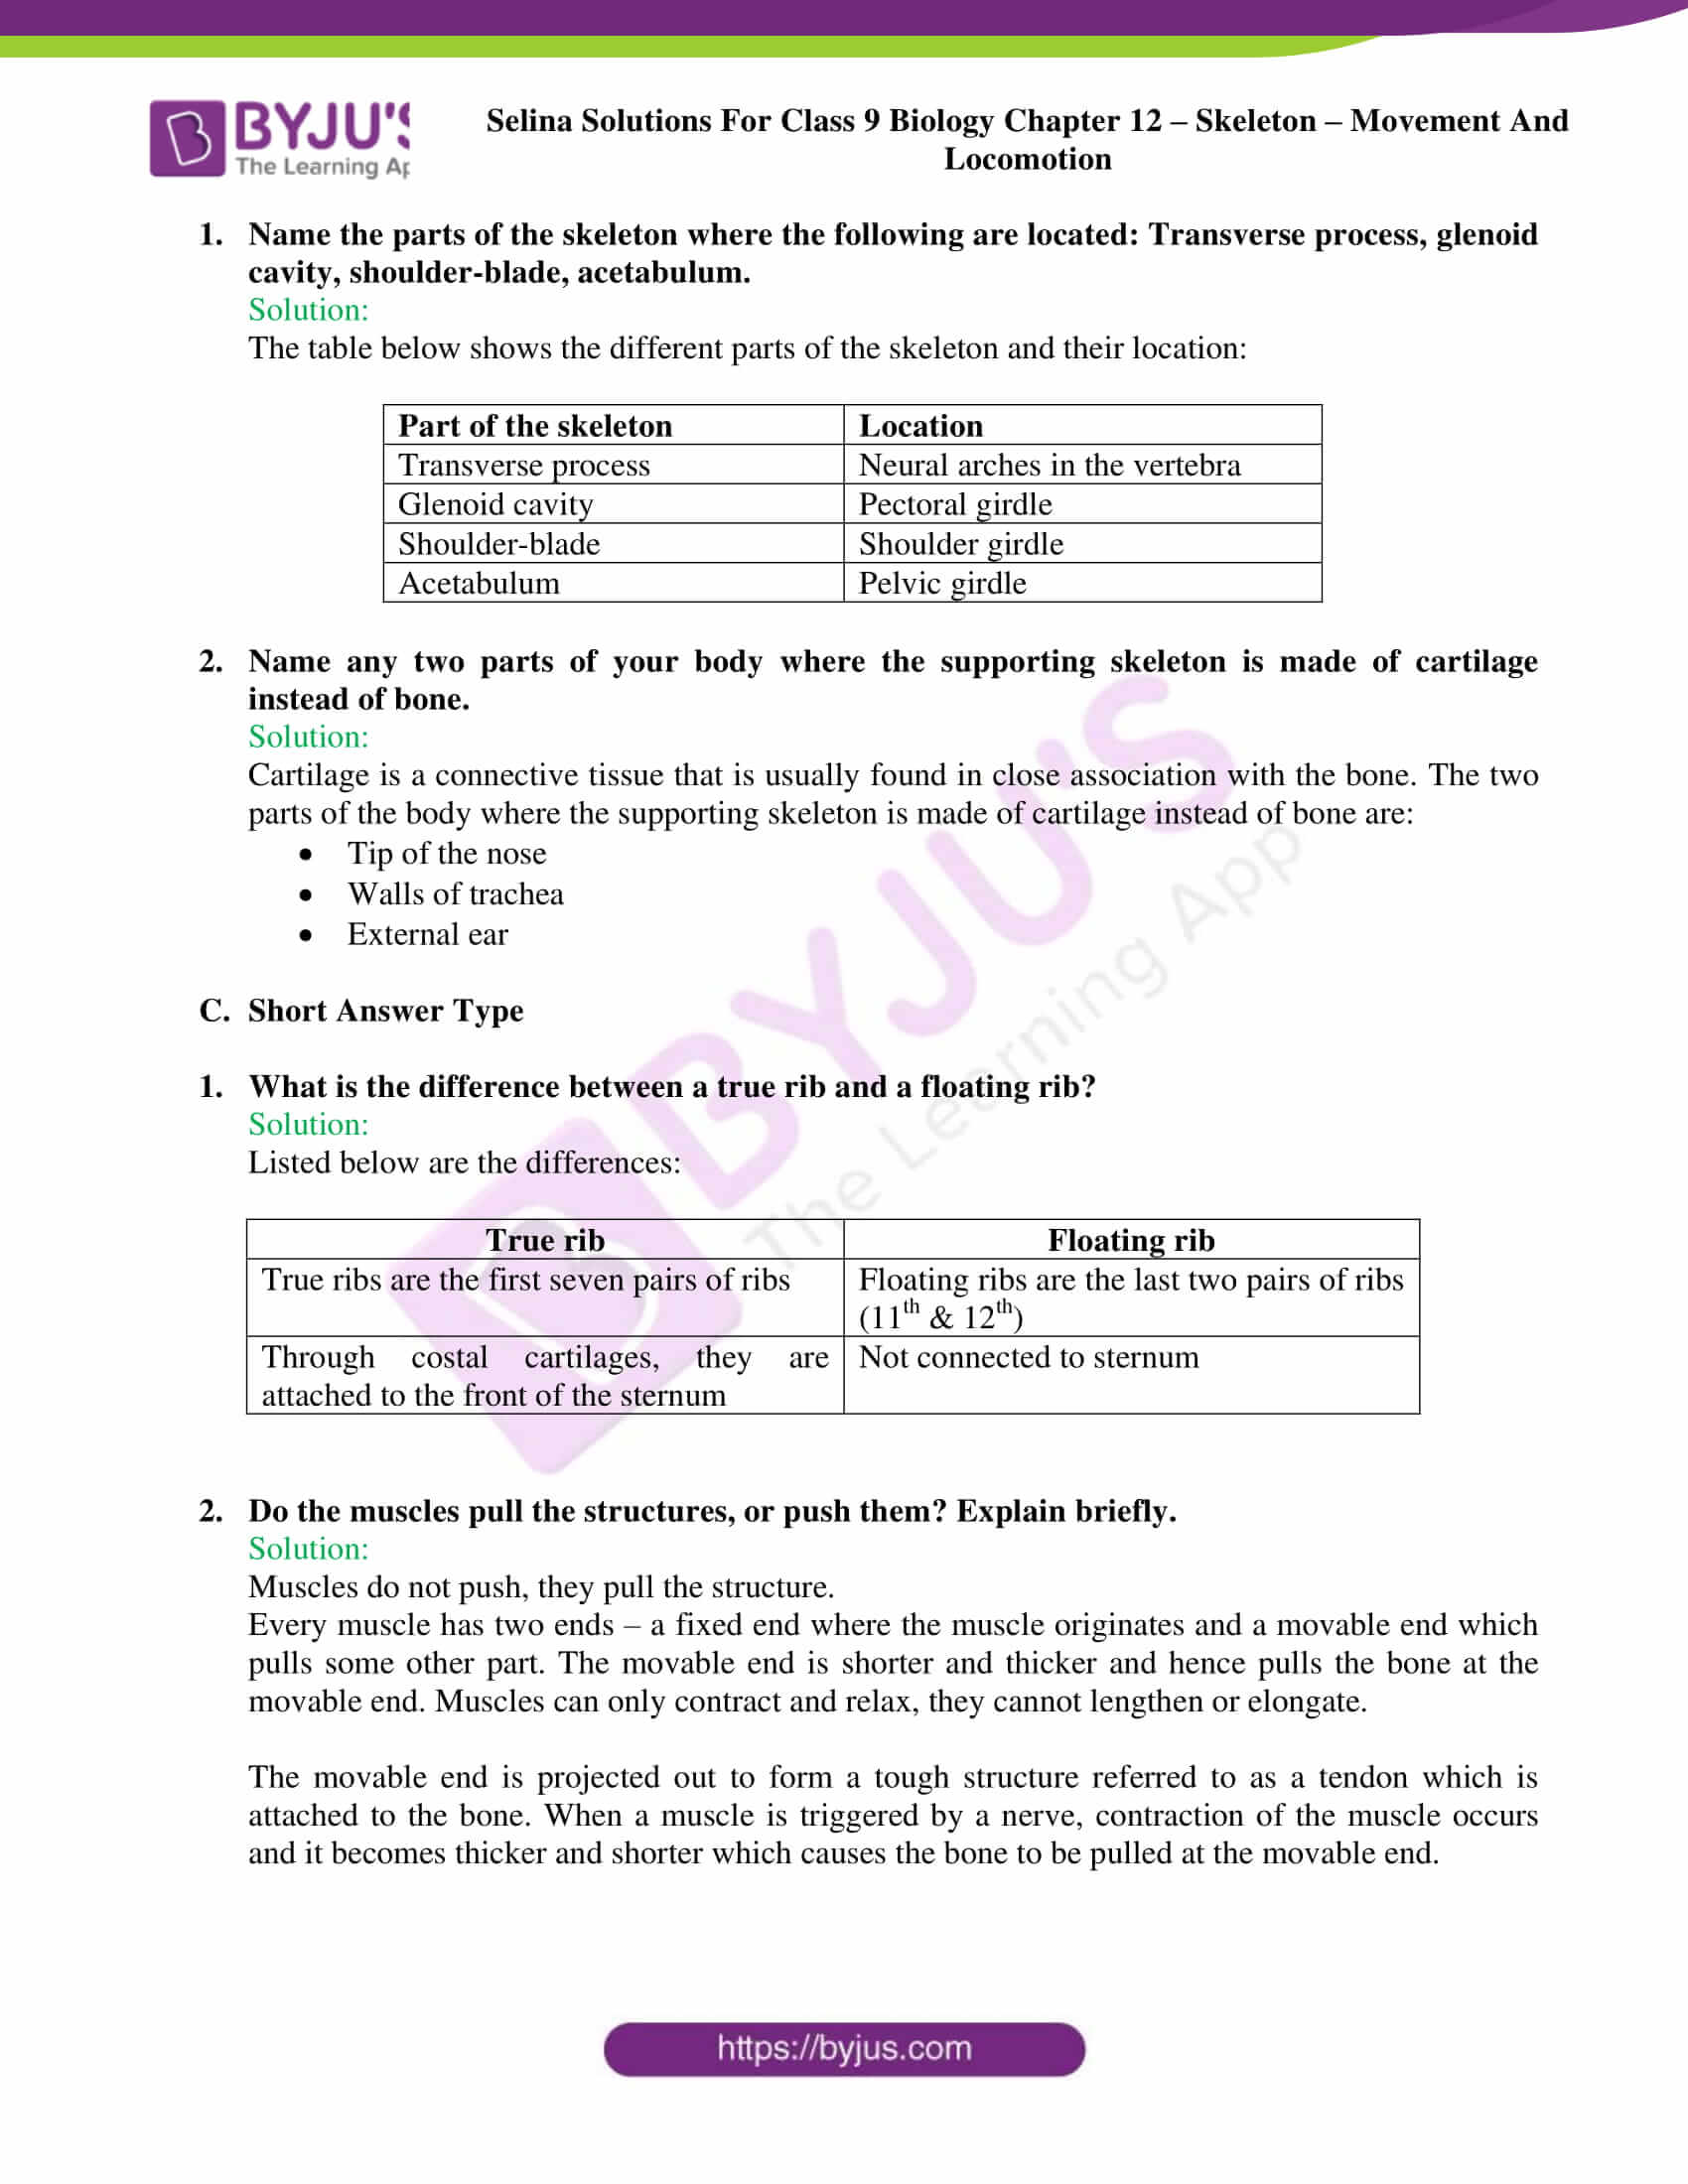 CHAPTER 5 SKELETAL SYSTEM STUDY GUIDE ANSWERS Essentials